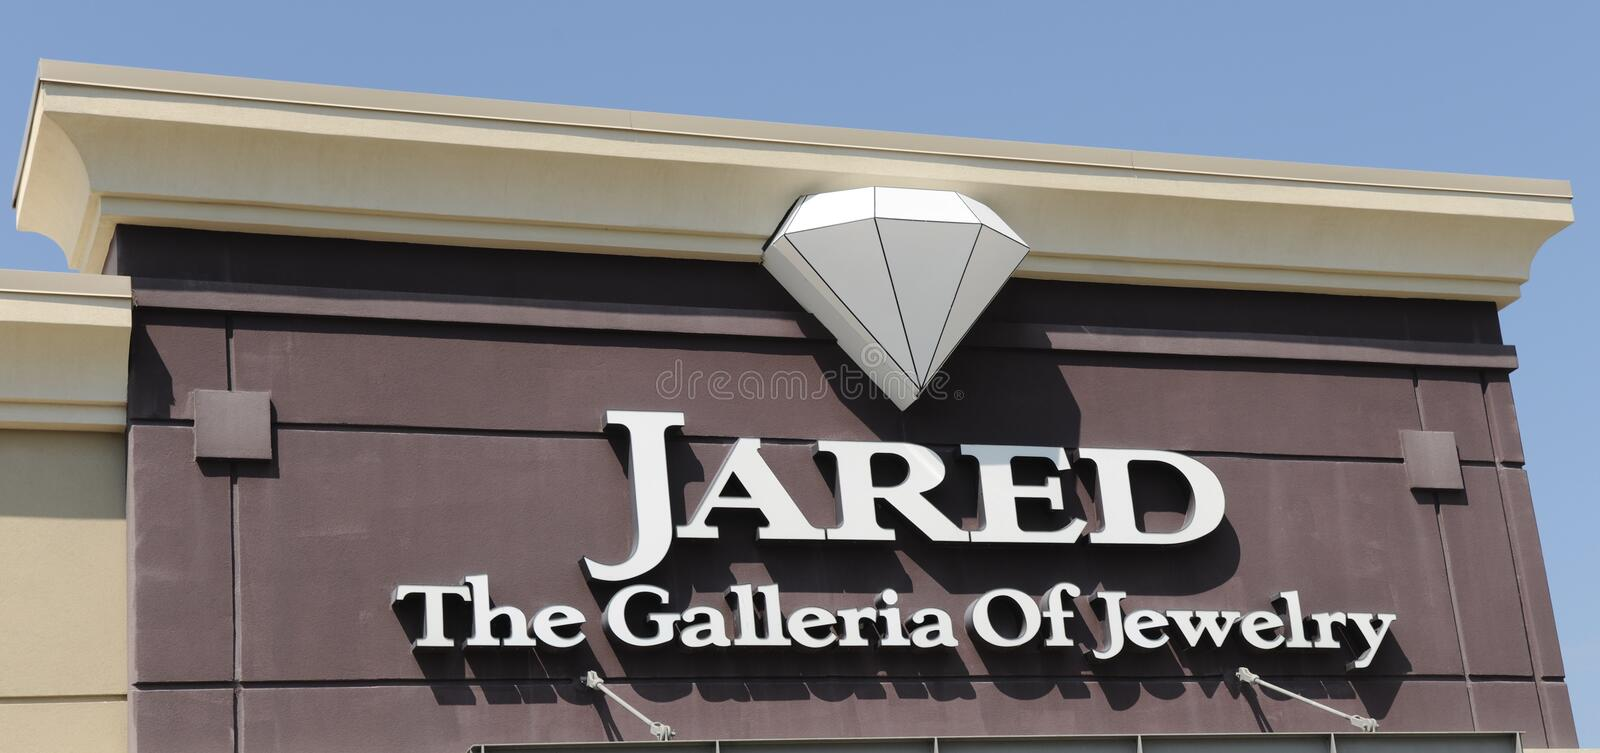 Jared Jewelry Store editorial stock photo Image of charm 76436368